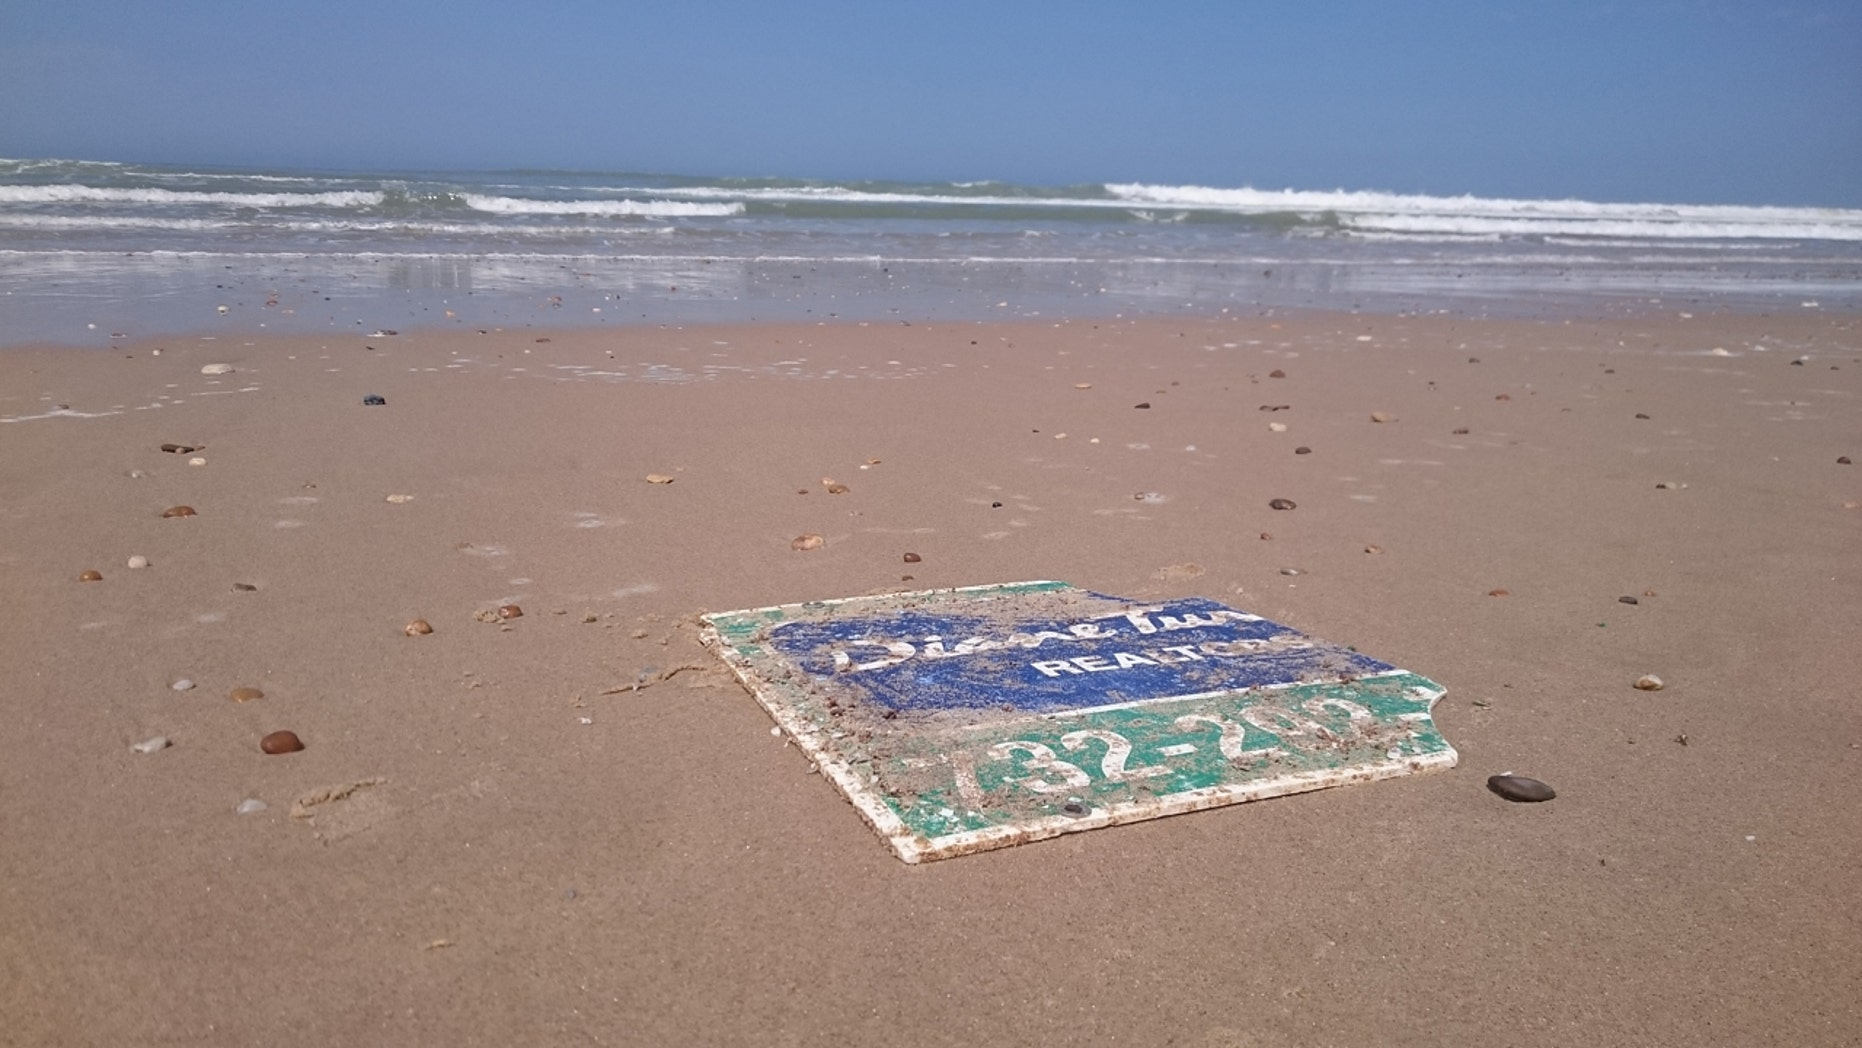 A damaged sign blown away from the Jersey Shore during Hurricane Sandy in 2012. The sign ultimately washed up on a French beach.